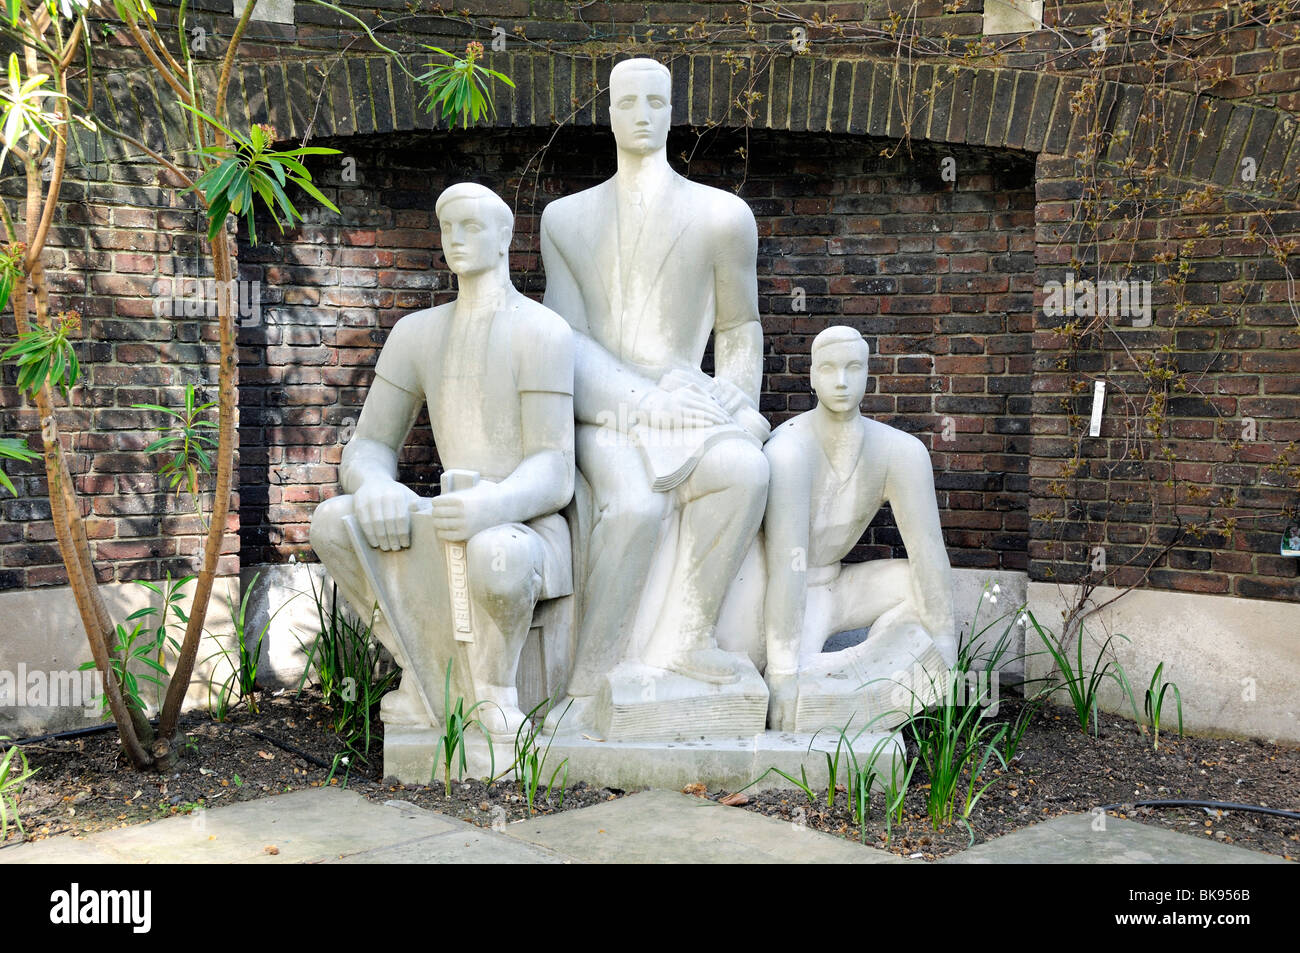 The Three Printers by the sculptor Wilfred Dudeney RBS in The Goldsmiths' Company garden Gresham Street in the City - Stock Image